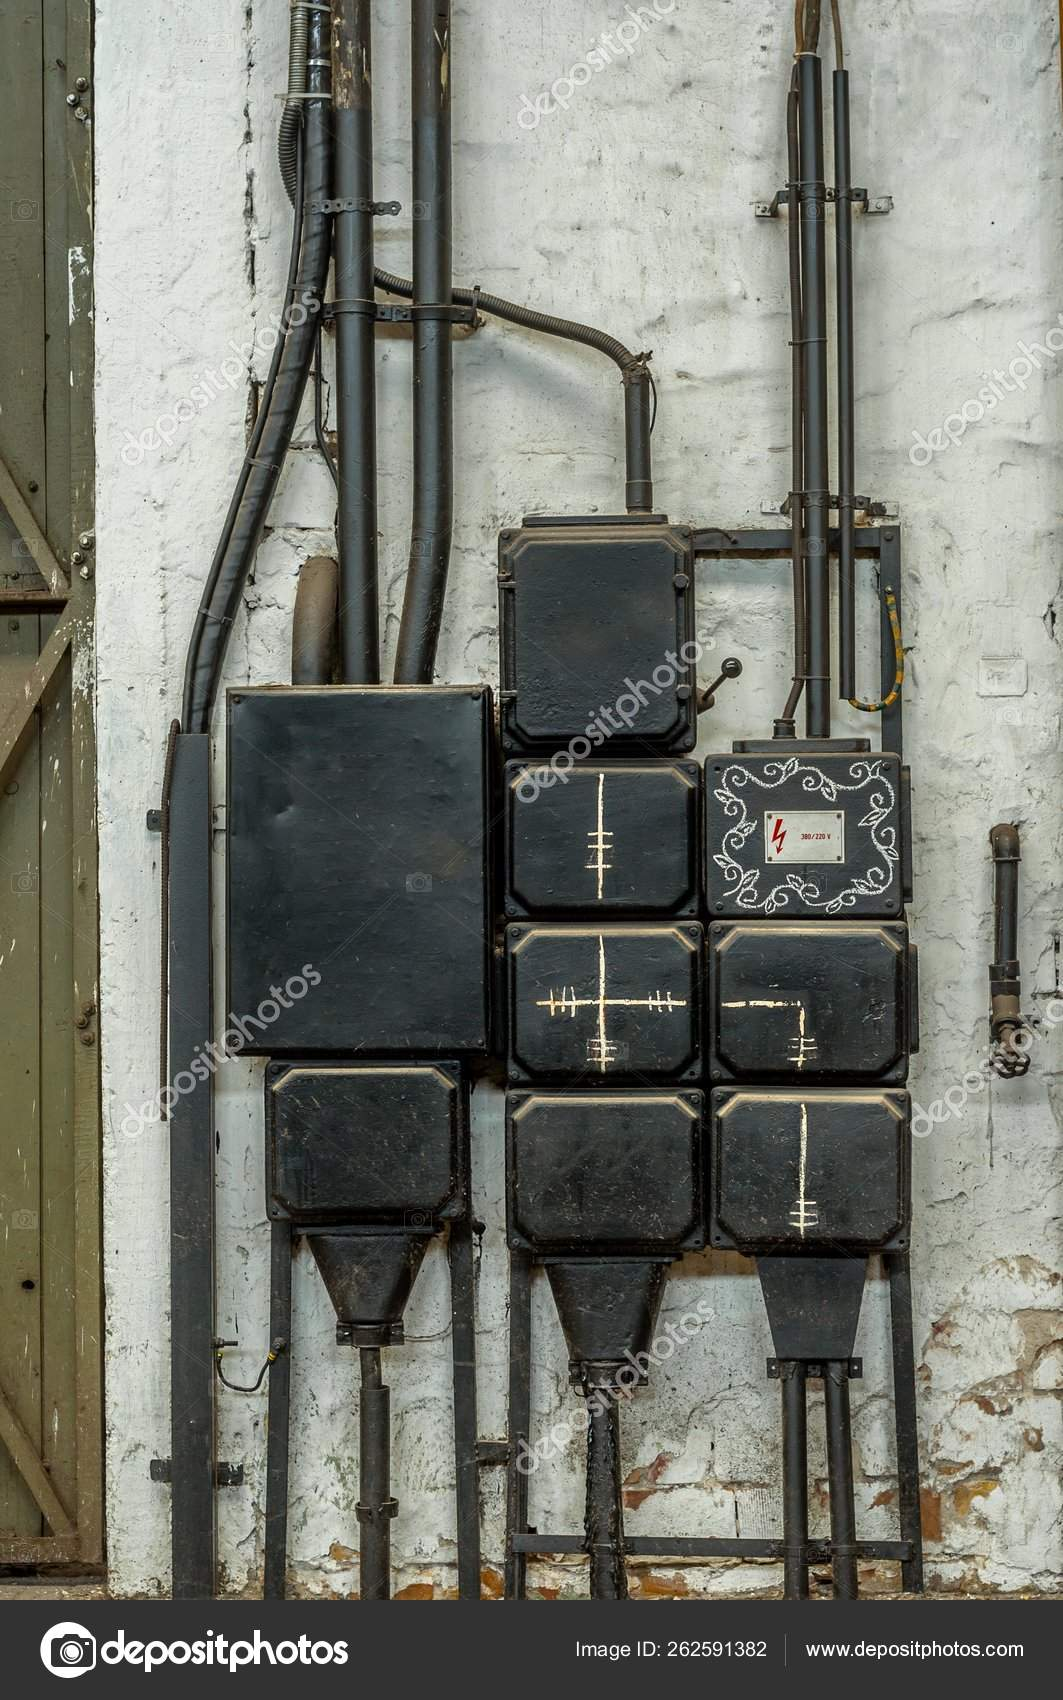 industrial fuse box wall closeup photo — stock photo © yayimages #262591382  depositphotos